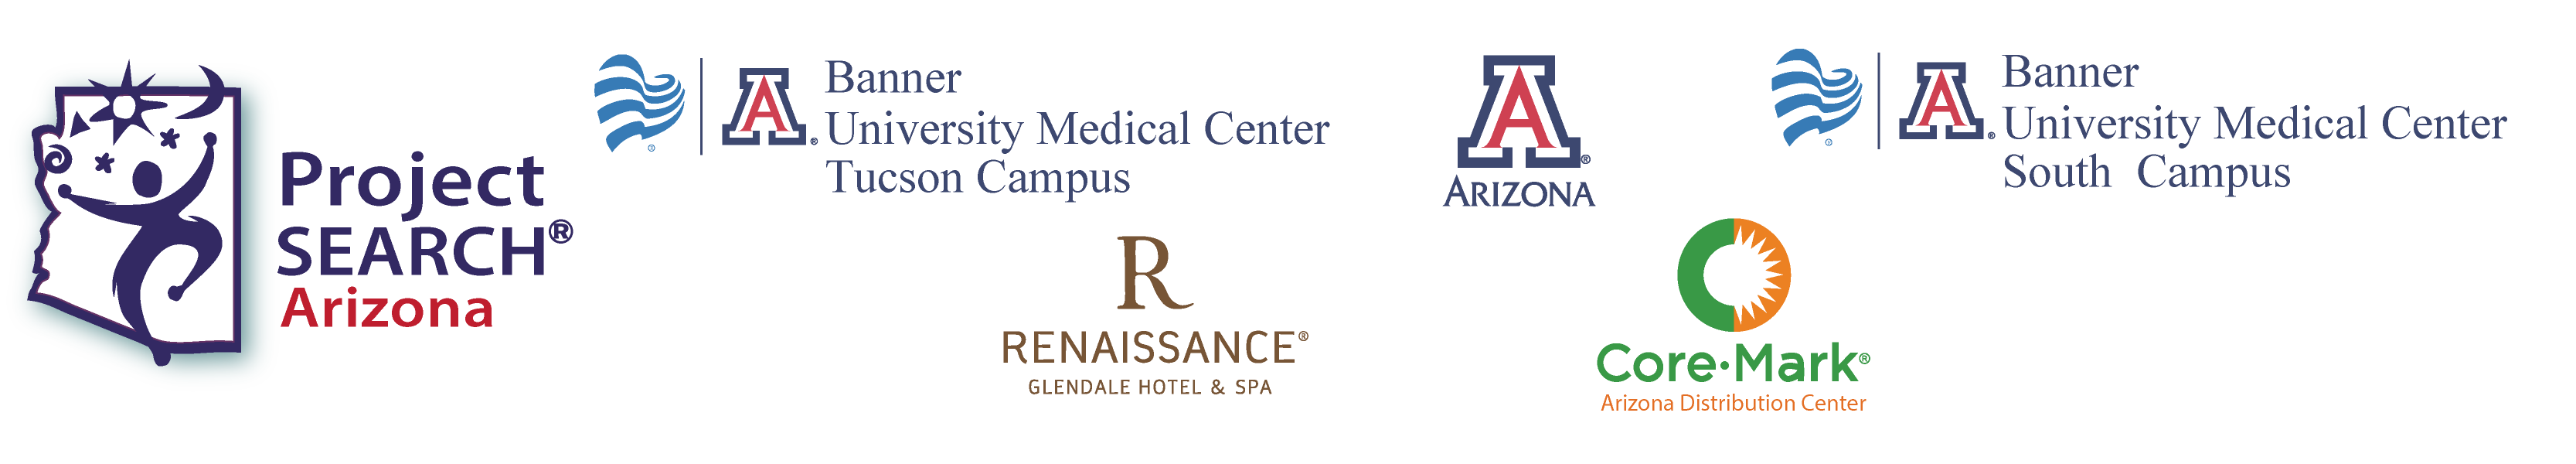 logos - Project SEARCH, Banner UMC Tucson, Banner UMC South, University of Arizona, Medtronic, Core-Mark Arizona Distribution Center, Renaissance Glendale Hotel and Spa